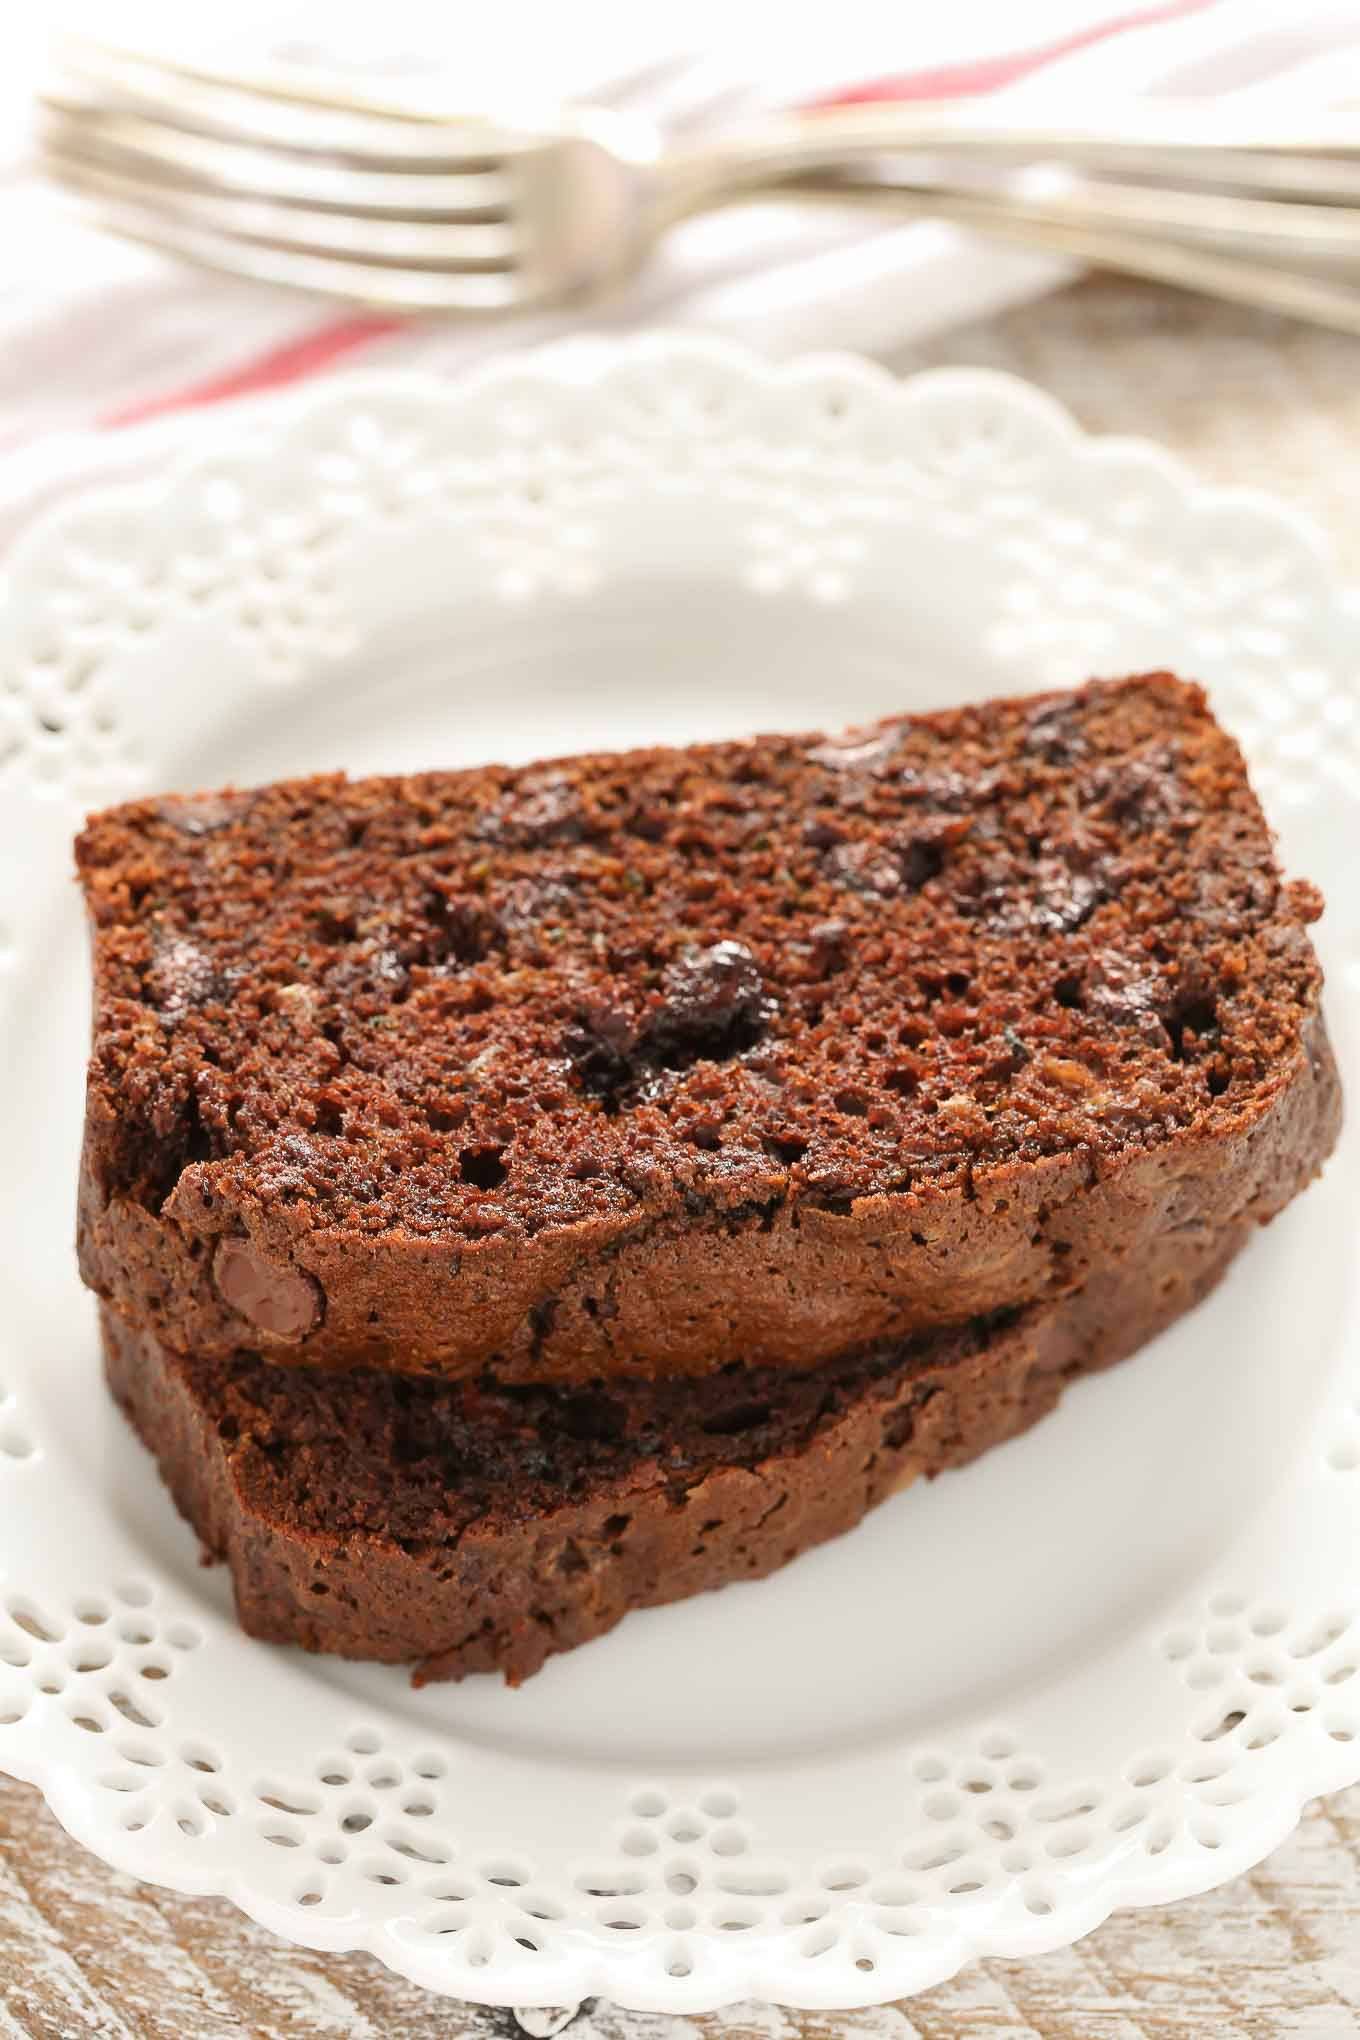 This Double Chocolate Zucchini Bread is incredibly rich, moist, fudgy, and loaded with chocolate chips!